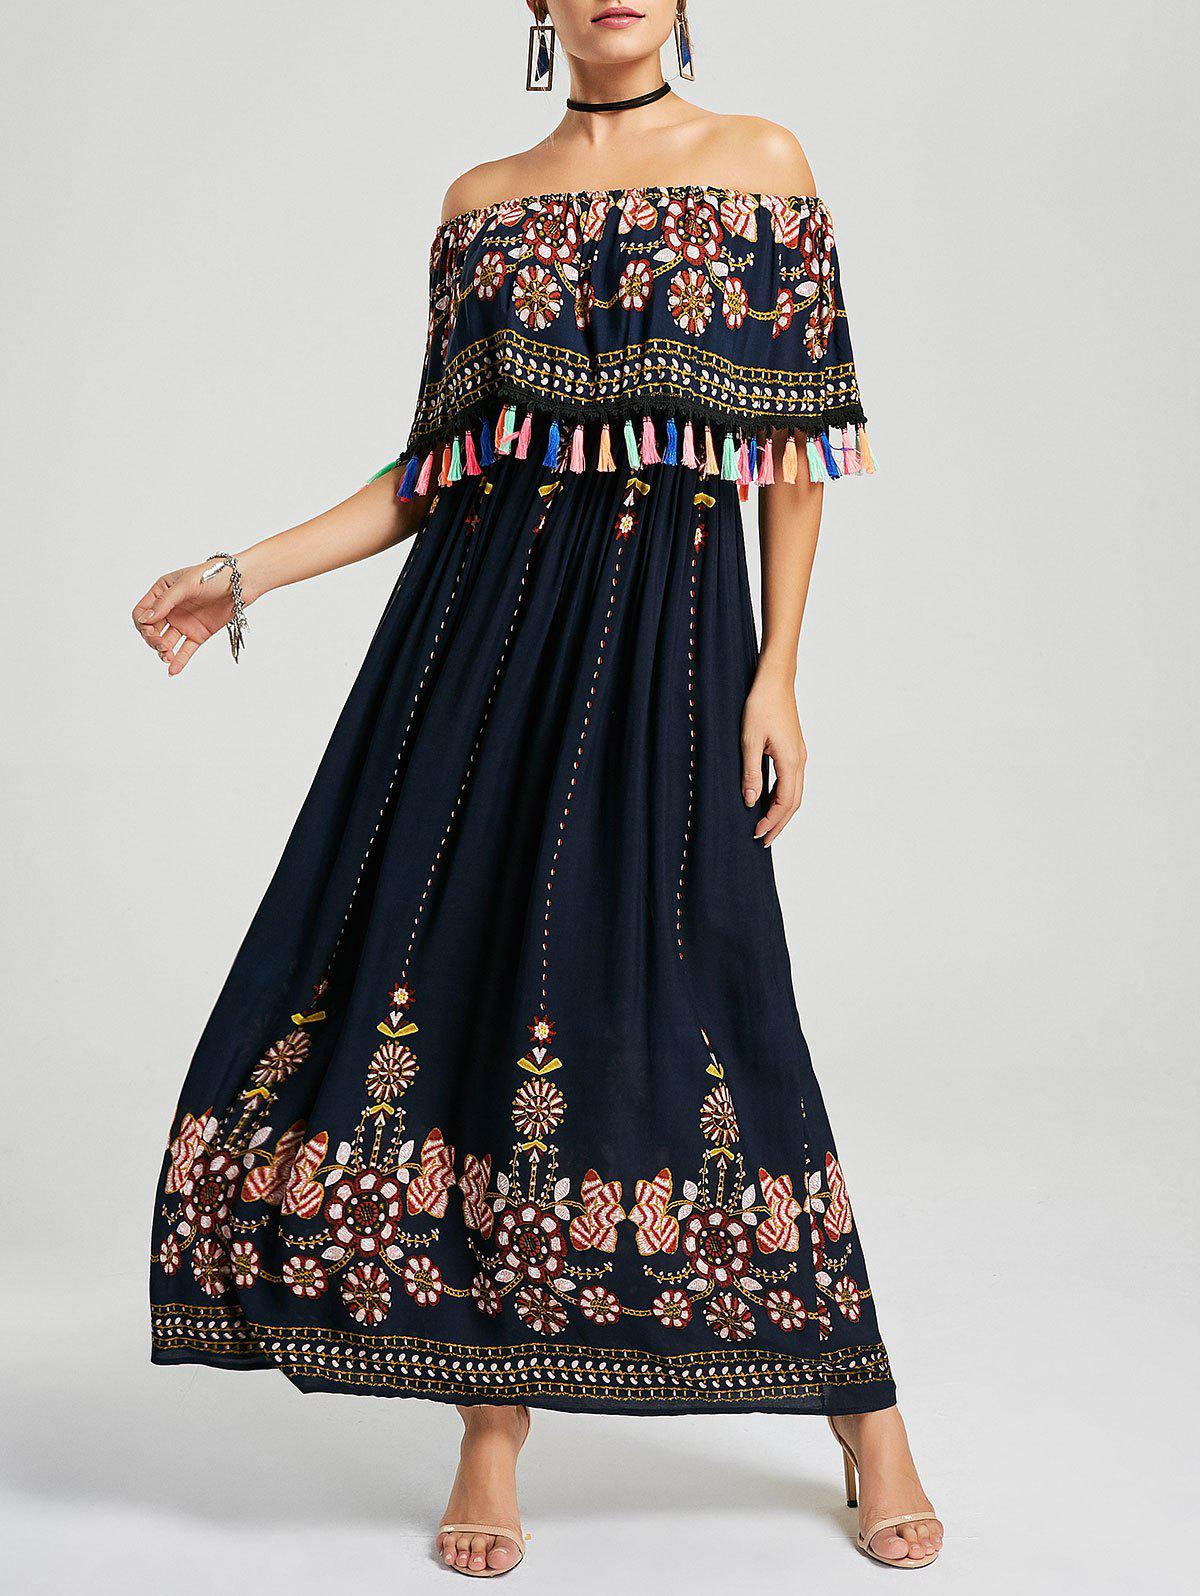 Tassel Off The Shoulder Boho Maxi Dress - PURPLISH BLUE XL